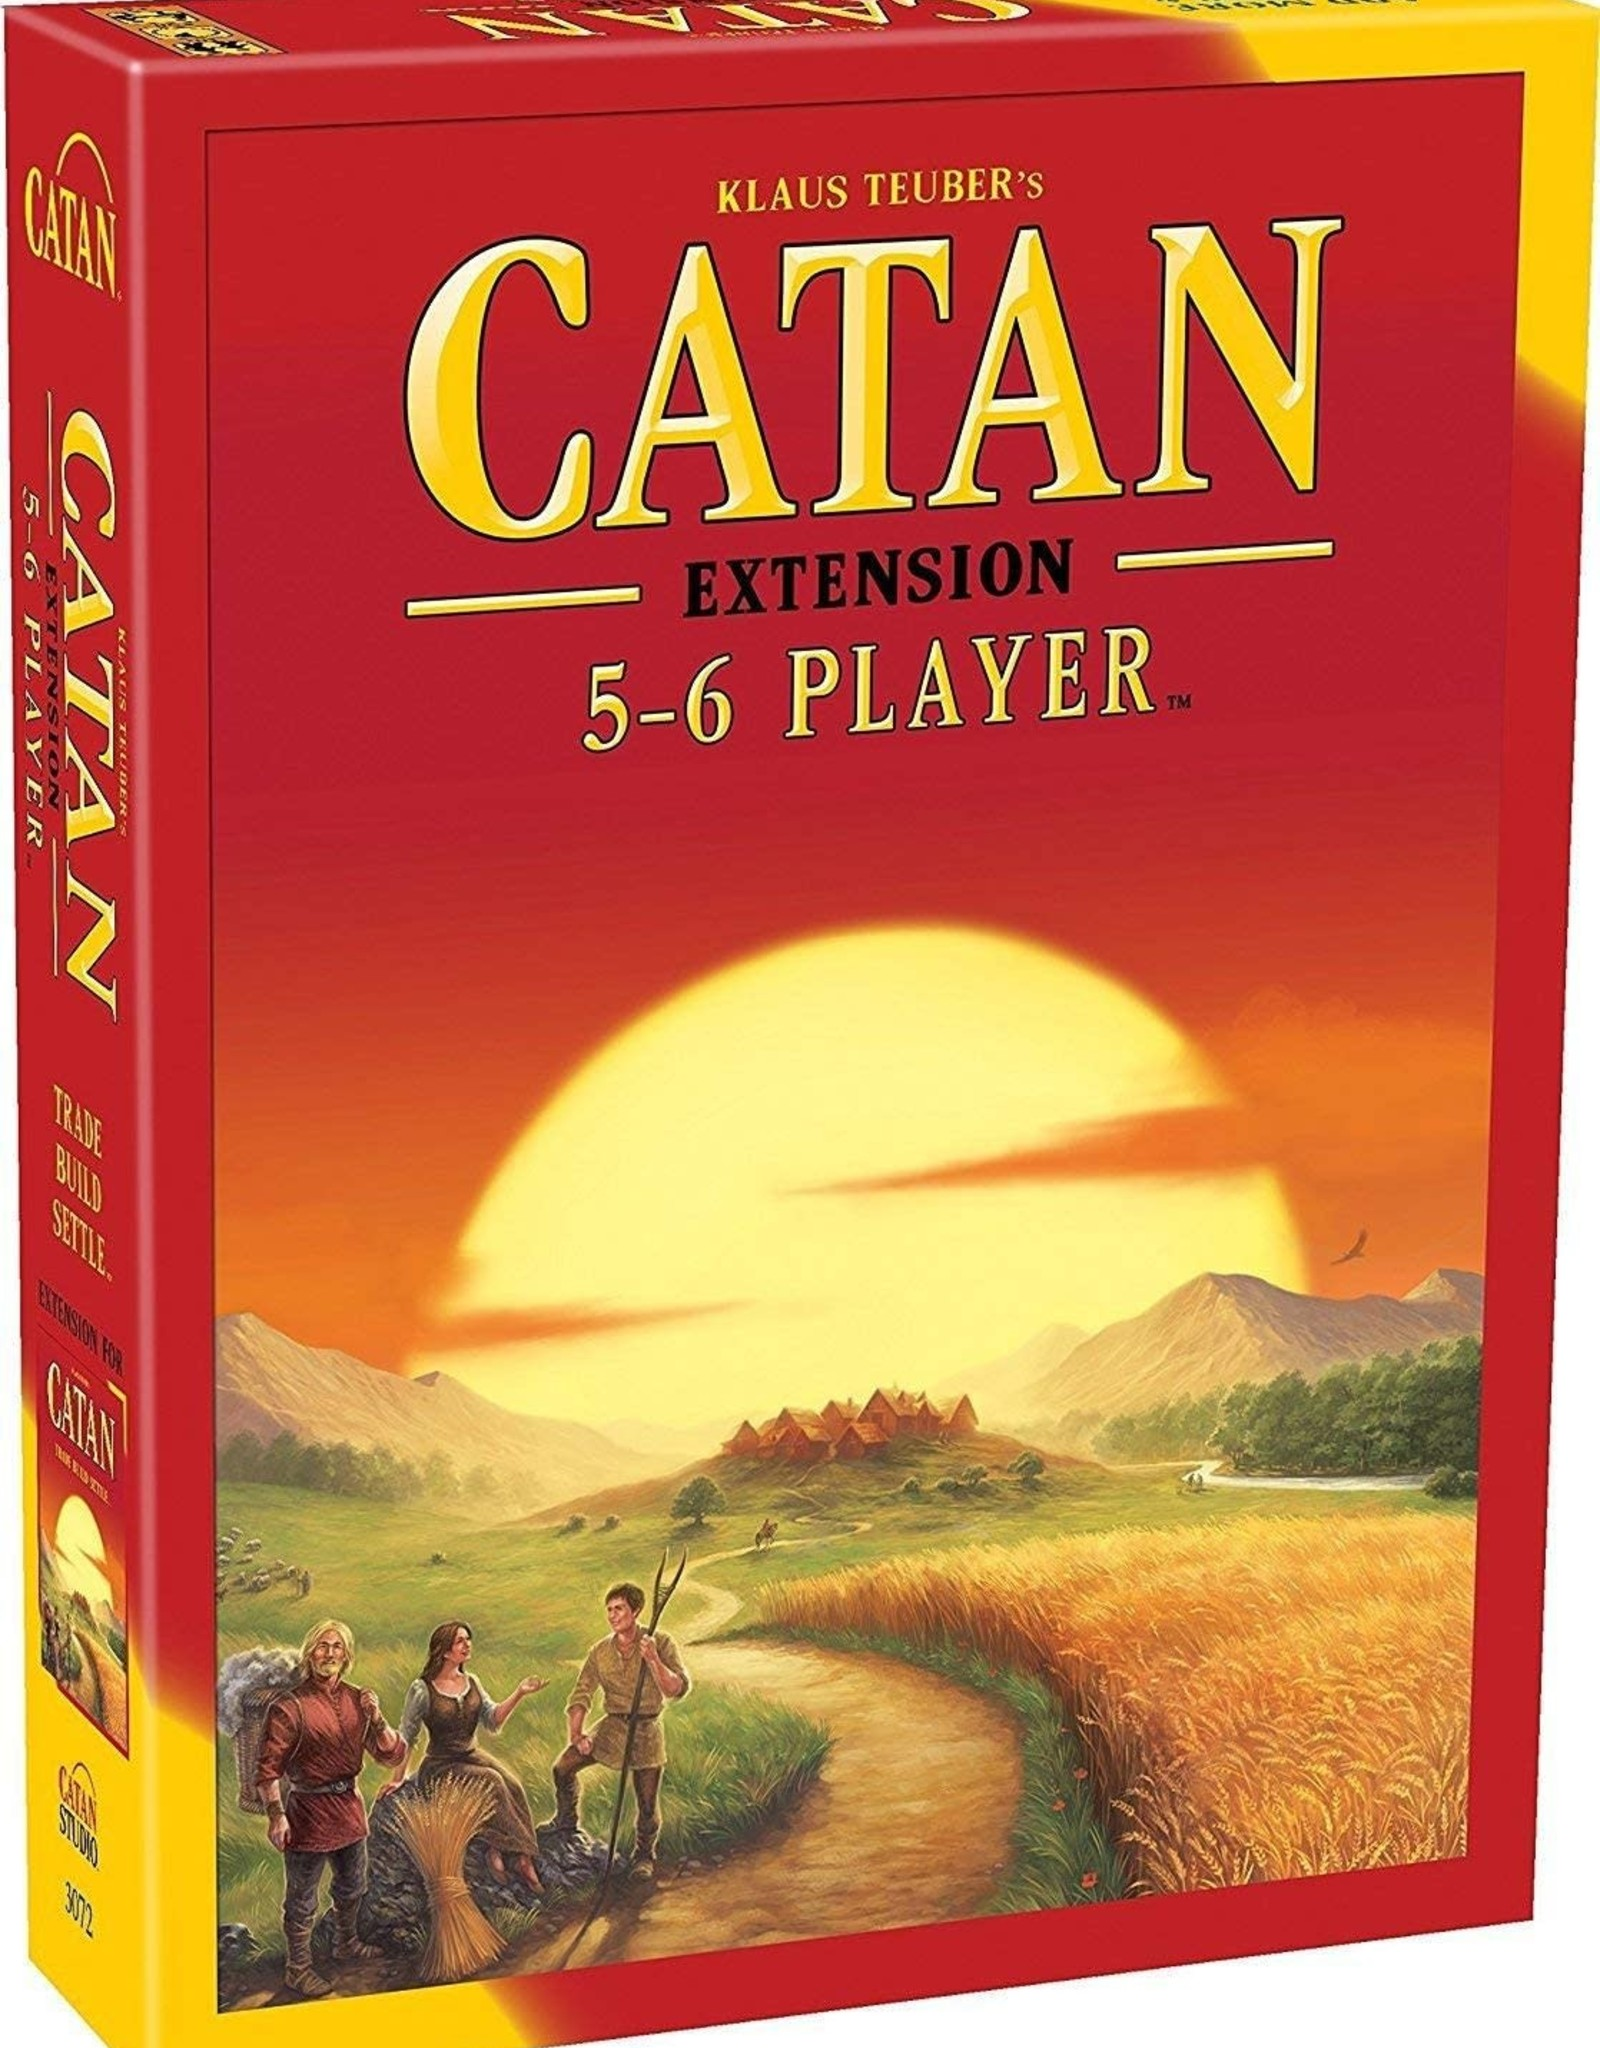 Catan Studios Catan Base Game 5-6 Player Expansion